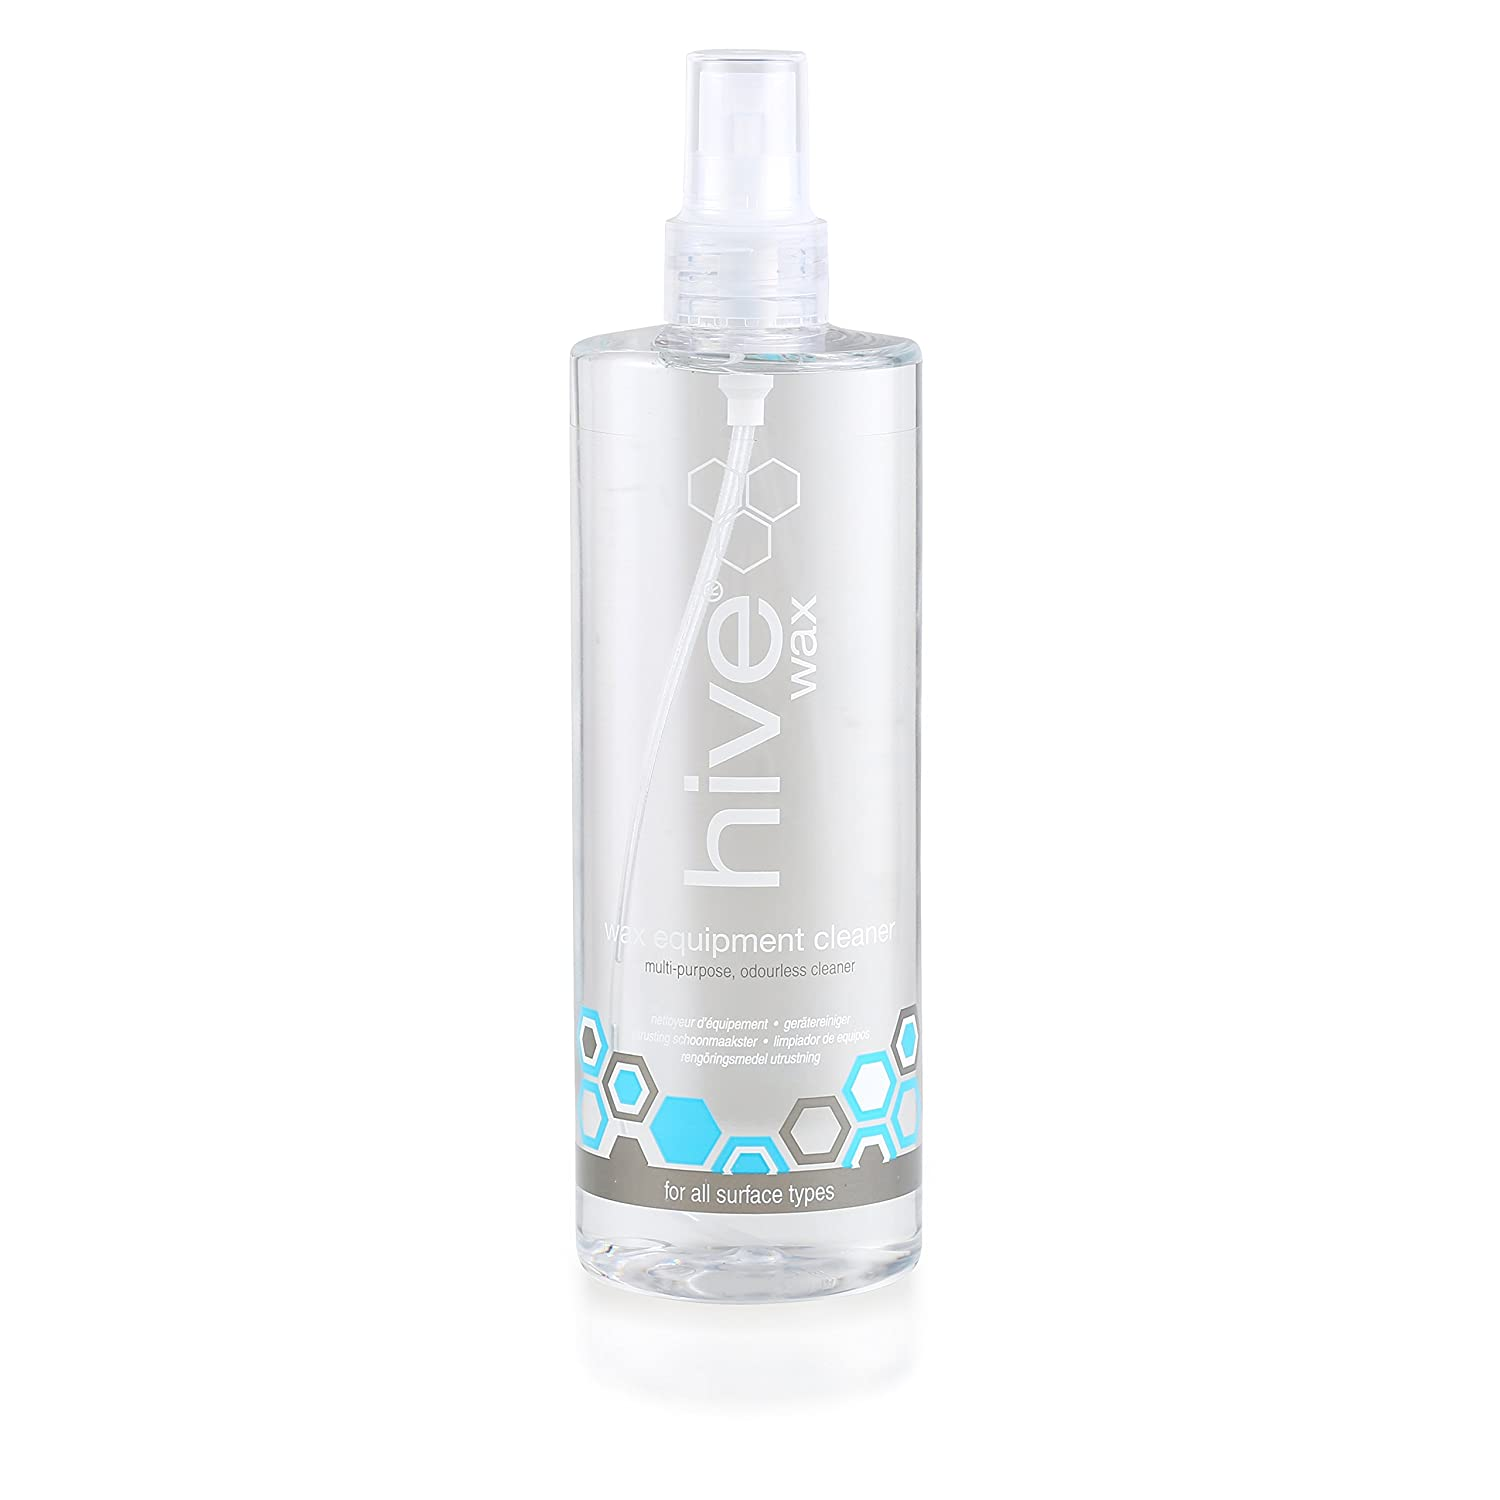 Hive of Beauty Professional Wax Equipment Cleaner Spray Wax Remover 400ml CODE: HOB5560